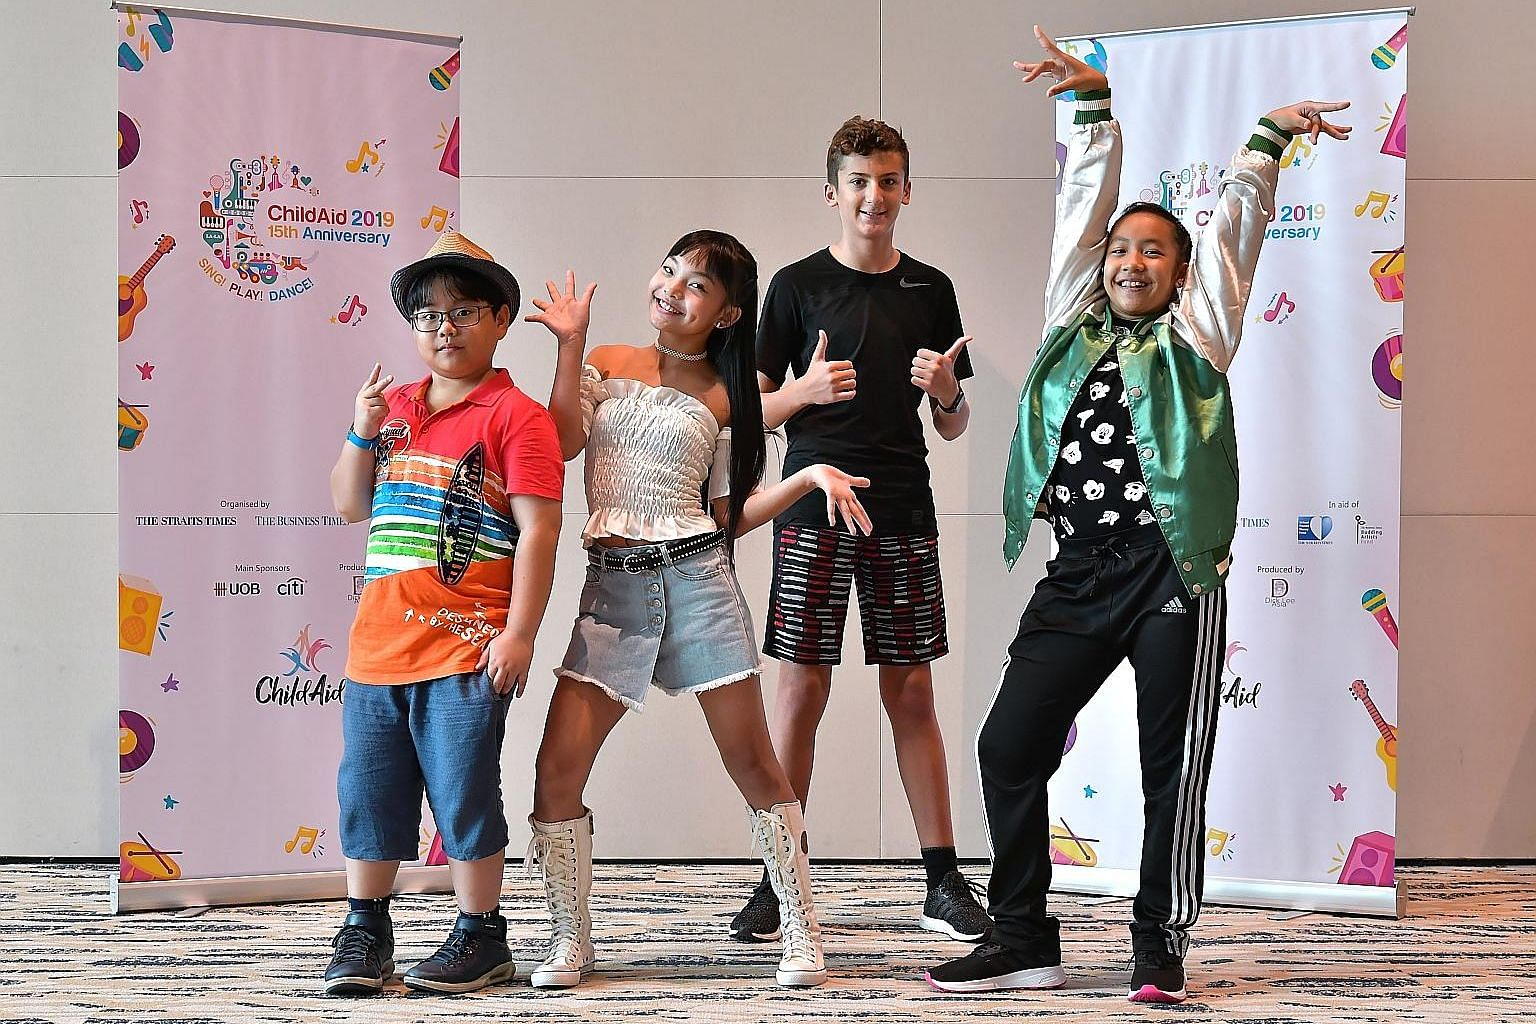 This year's ChildAid concert emcees are (from left) Rey Phua, 11; Gisele Chiam, 10; Steven Simopoulos, 12; and Sri Qaseh Nuraisyah Abdullah, 12. The charity event will showcase young performers using their talents to raise funds for needy students. S